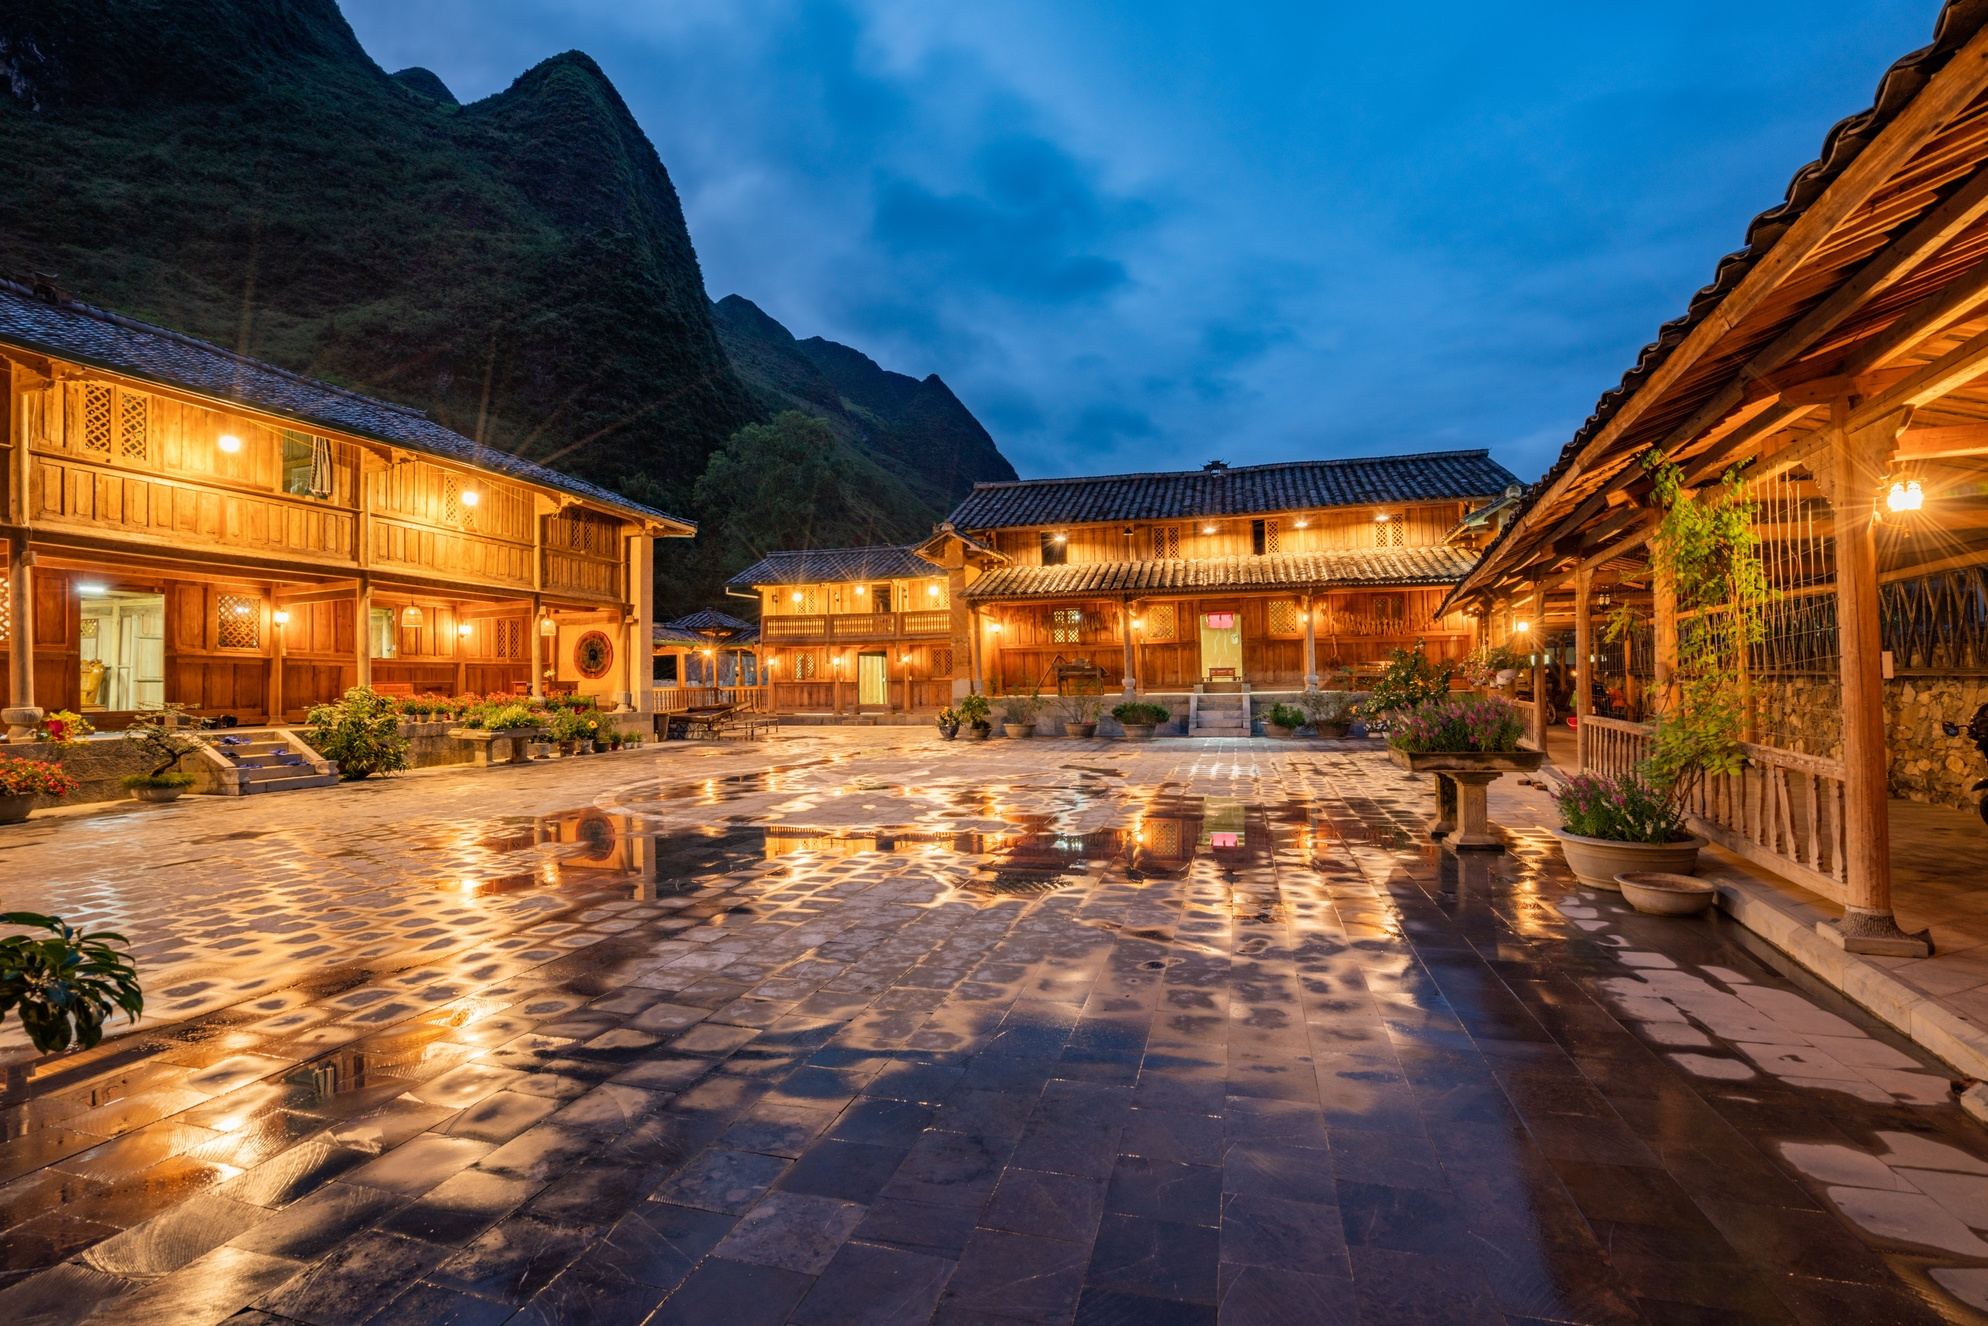 Wide shot of an estate with wooden cabins surrounded by high mountains at night